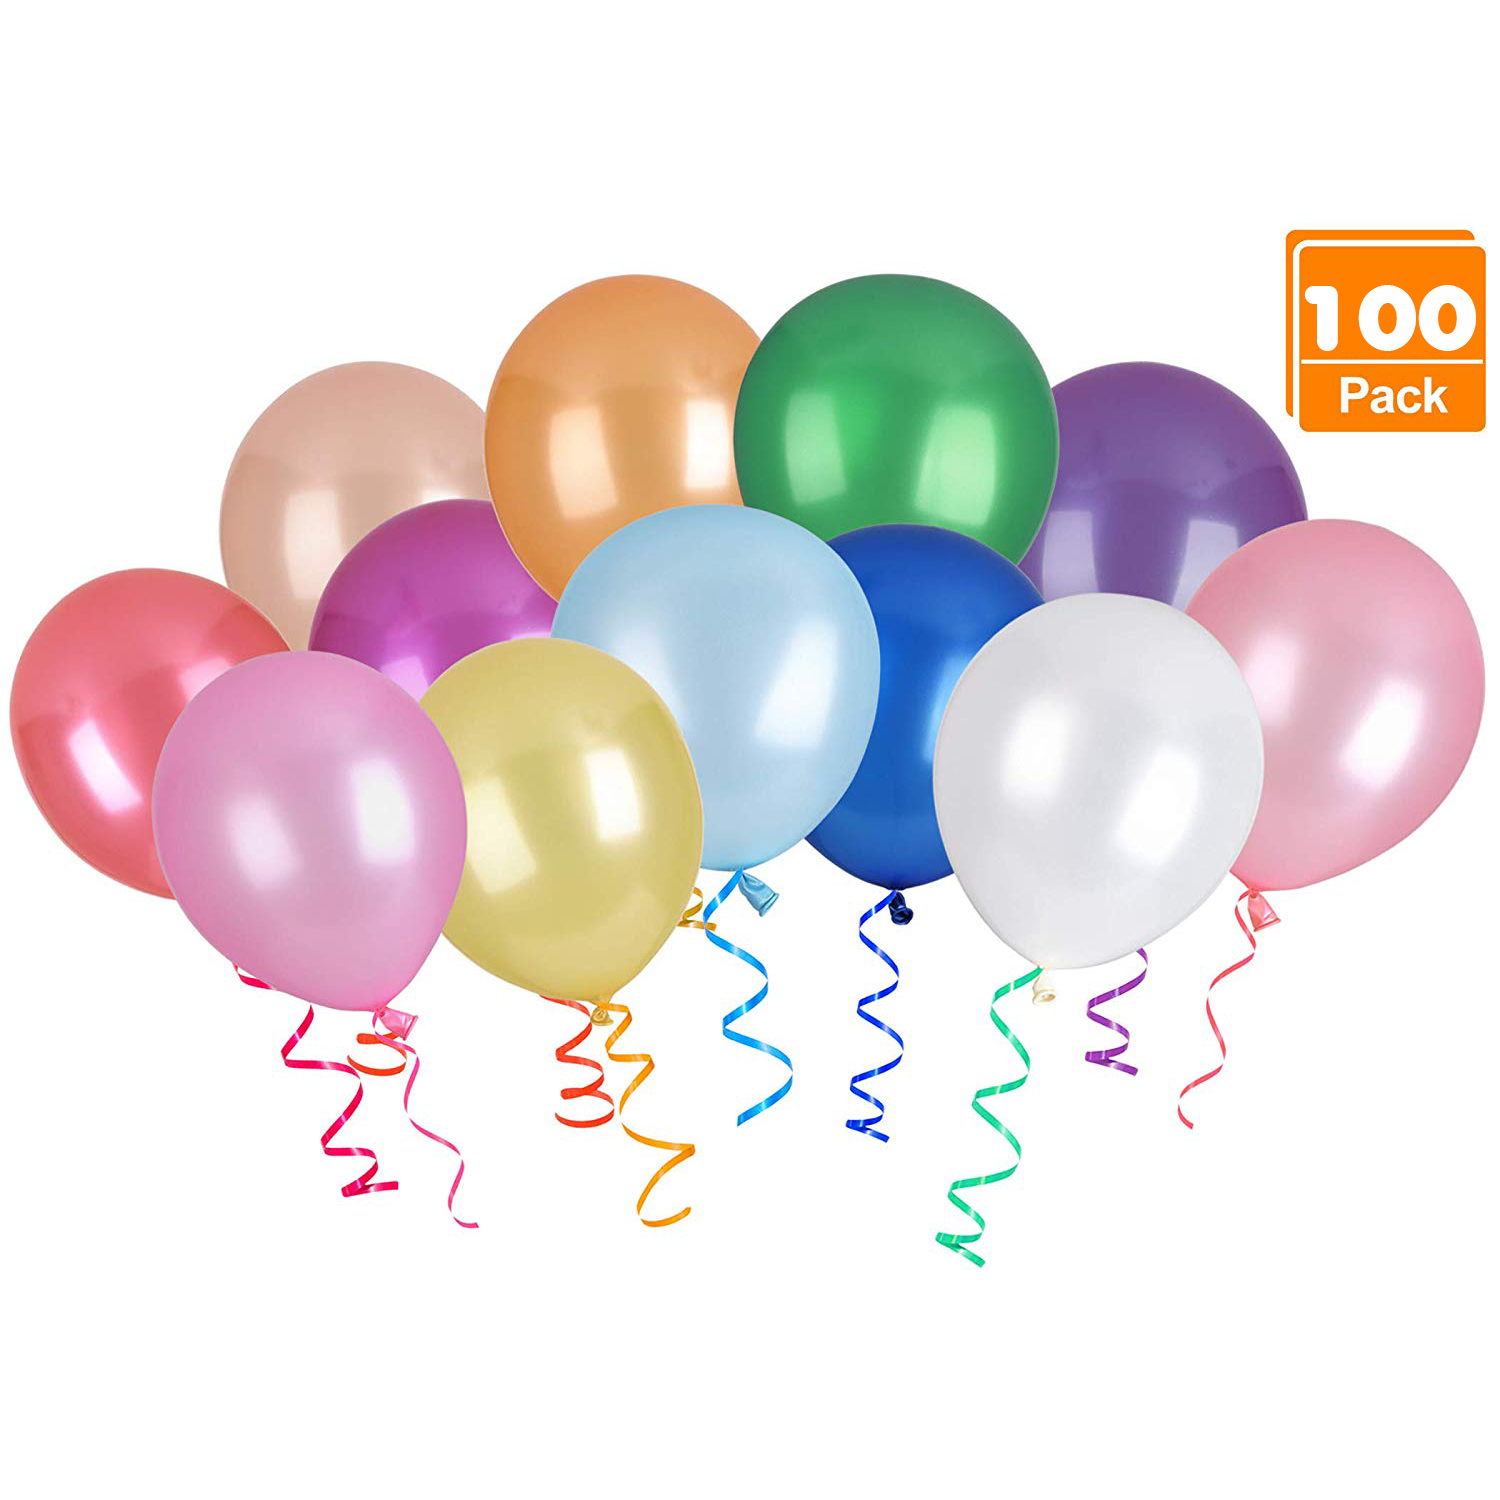 100PACK Party Balloons for Birthday, Graduation, Parties, Weddings, Baby Shower, Decoration